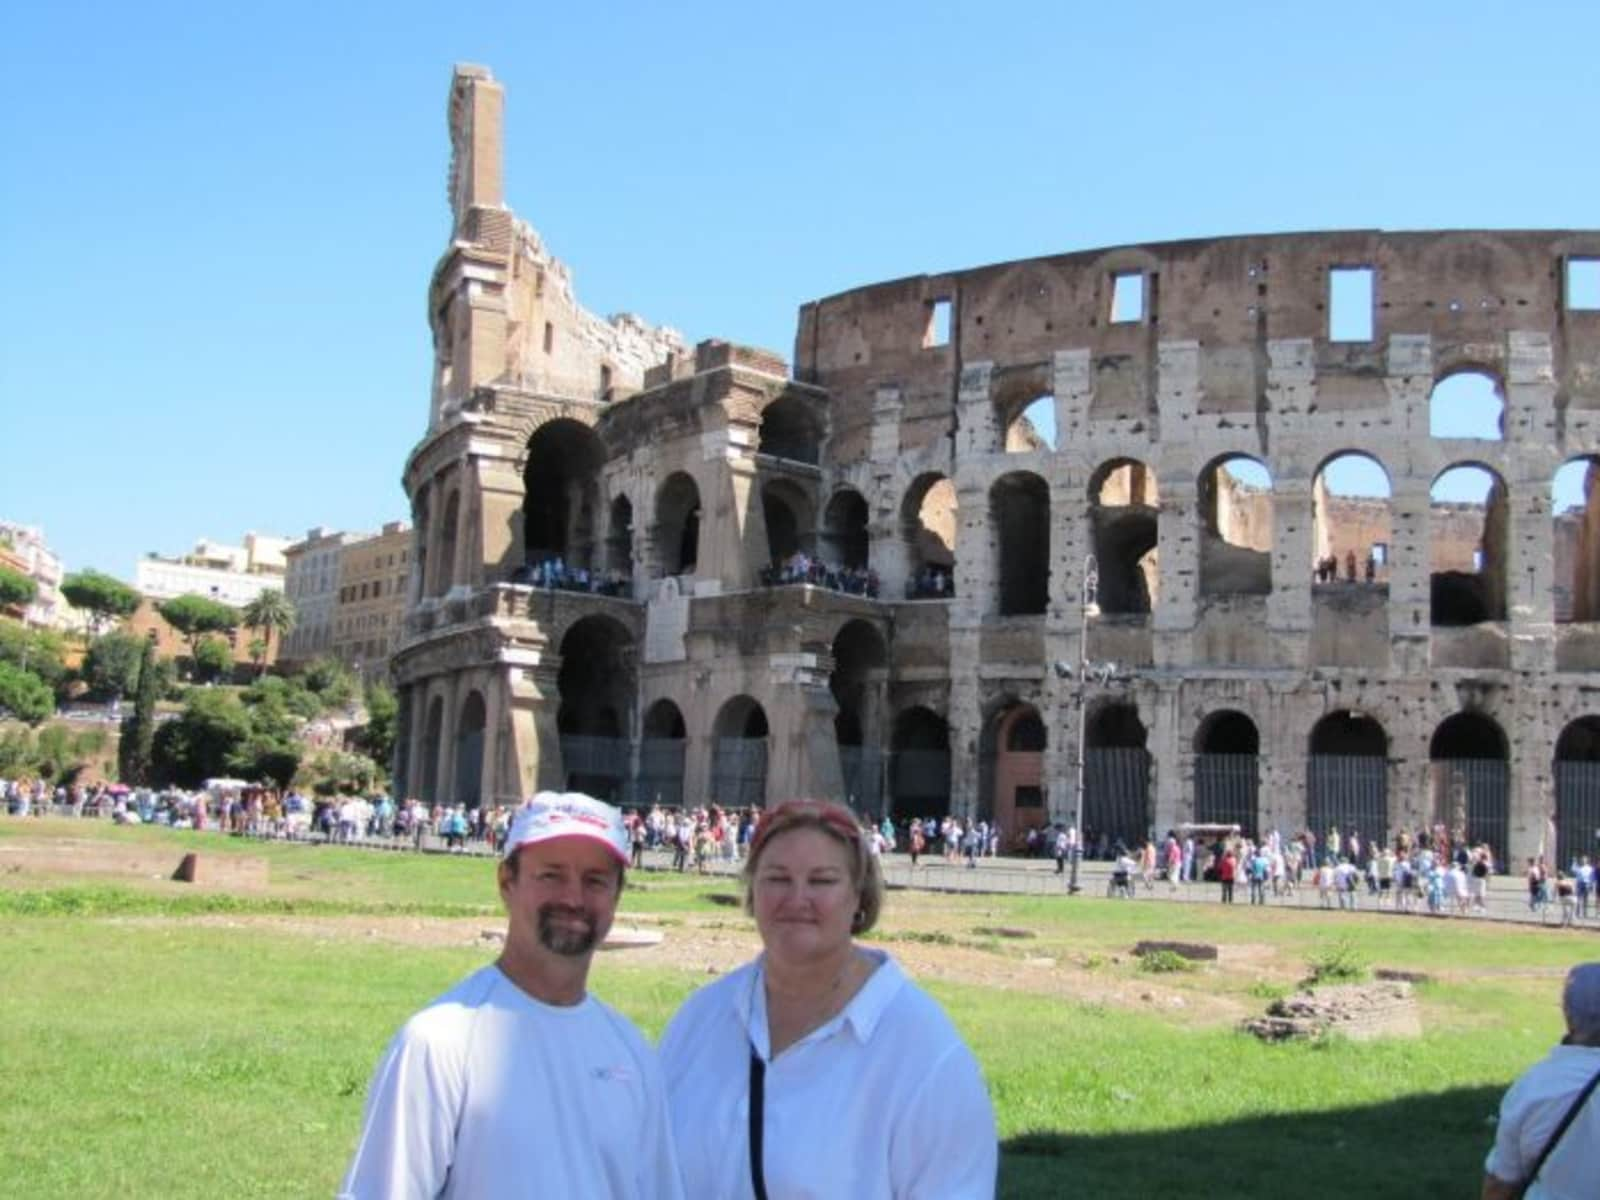 Marsha & Bill from Bargersville, Indiana, United States